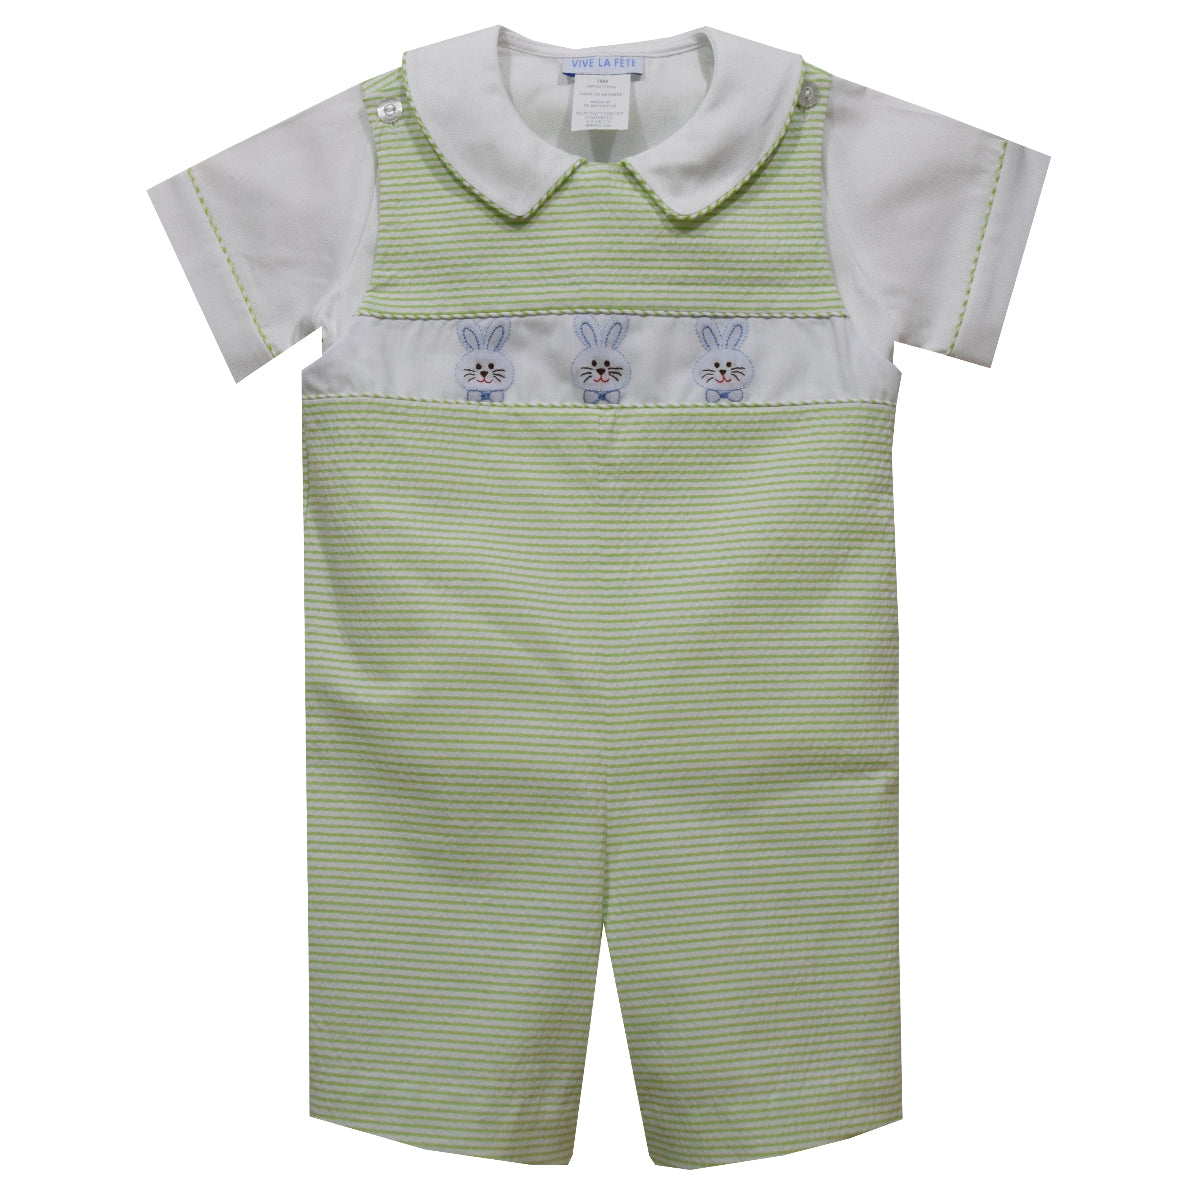 Bunnies Shadow Smocked Lime Green Stripe Seersucker Short Sleeve Boys Shortall and Shirt - Vive La Fête - Online Apparel Store